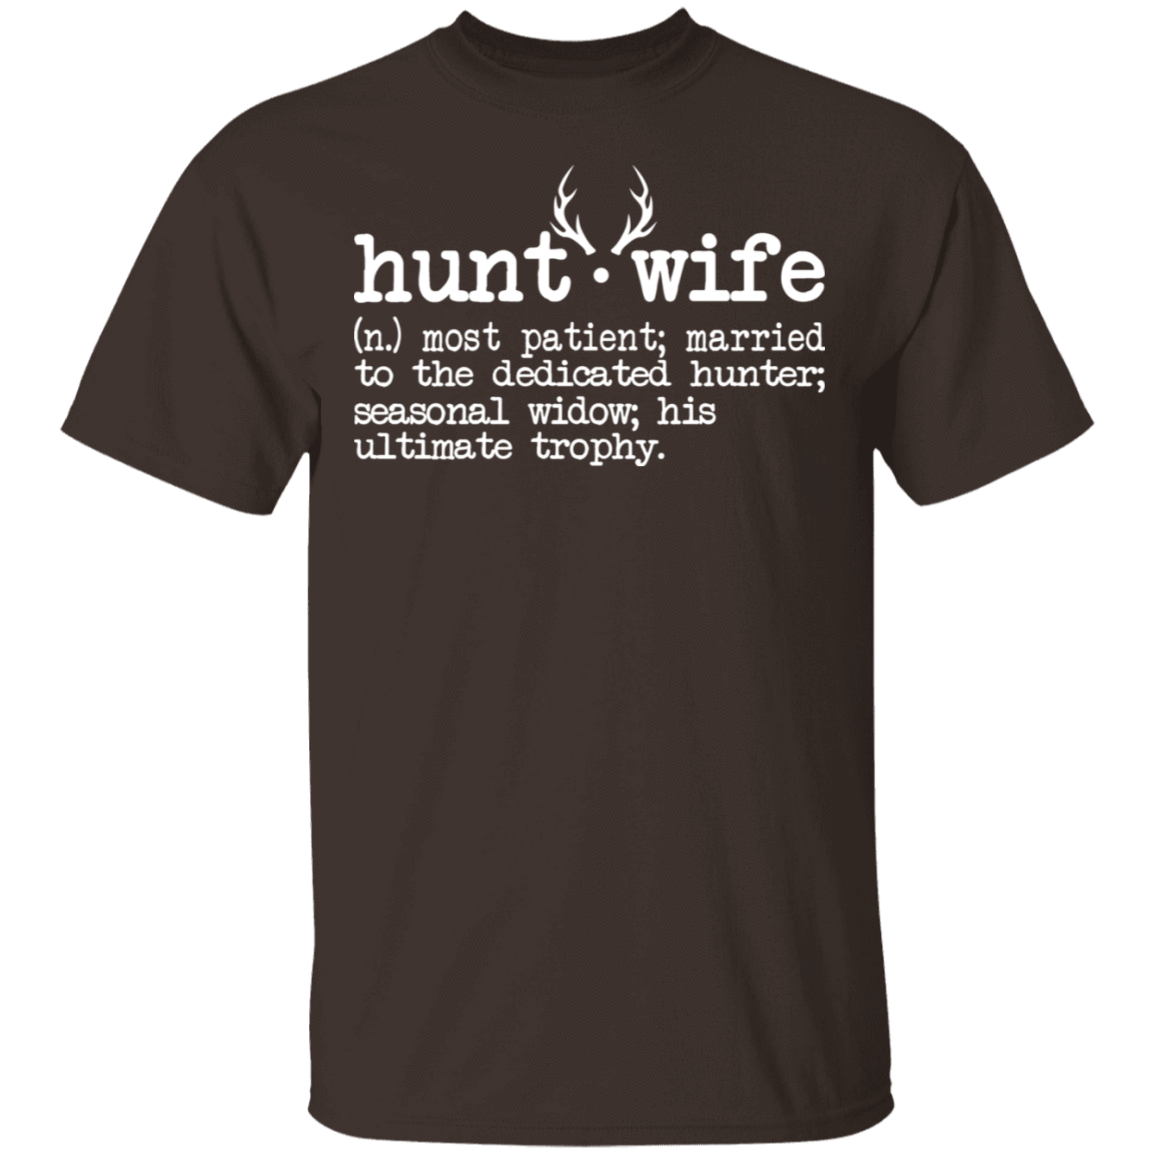 Hunt Wife Definition Shirt Married To The Dedicated Hunter T-Shirts, Hoodies, Tank 22-2283-79535896-12087 - Tee Ript